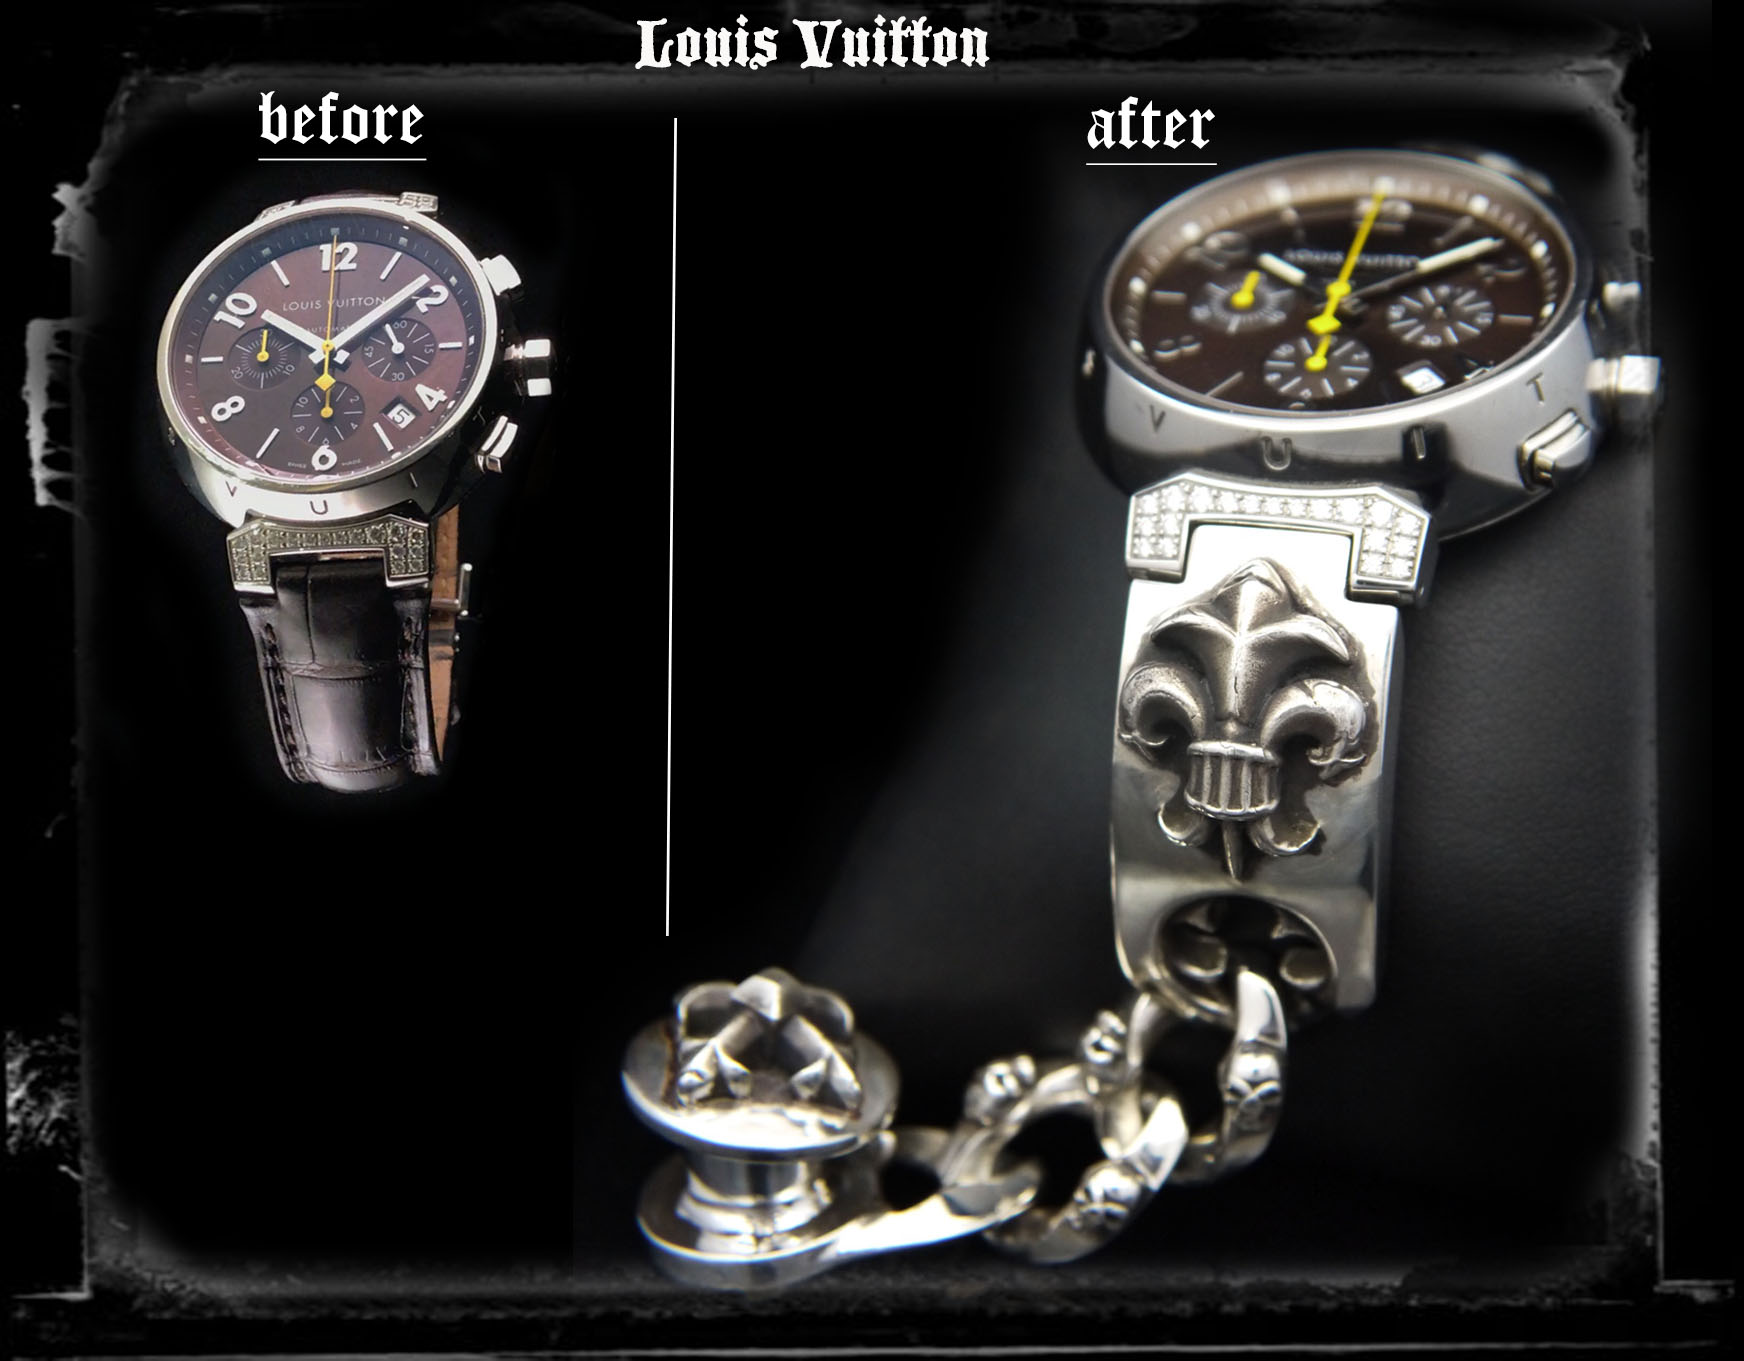 louis-vuitton-before-after.jpg